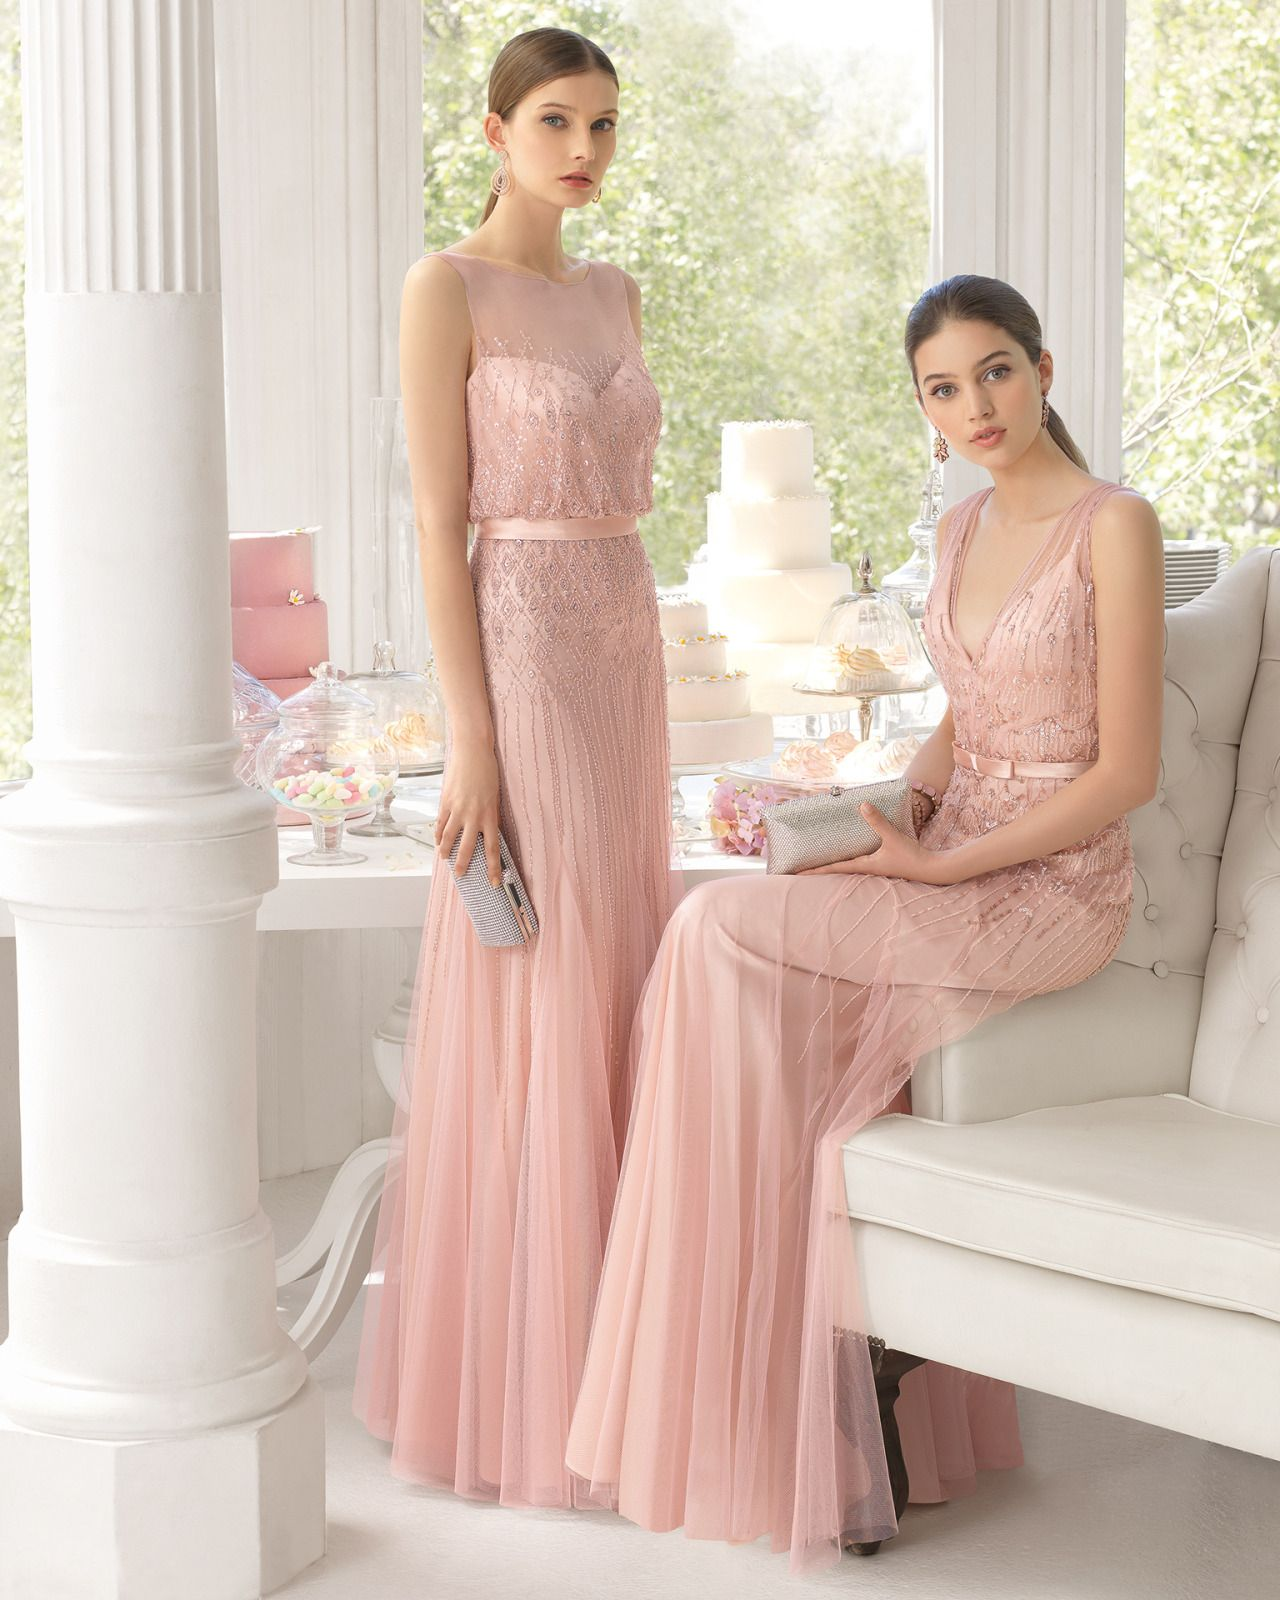 Ana Rosa | BRIDESMAIDS | Pinterest | Damitas de honor, Damas y Rosas